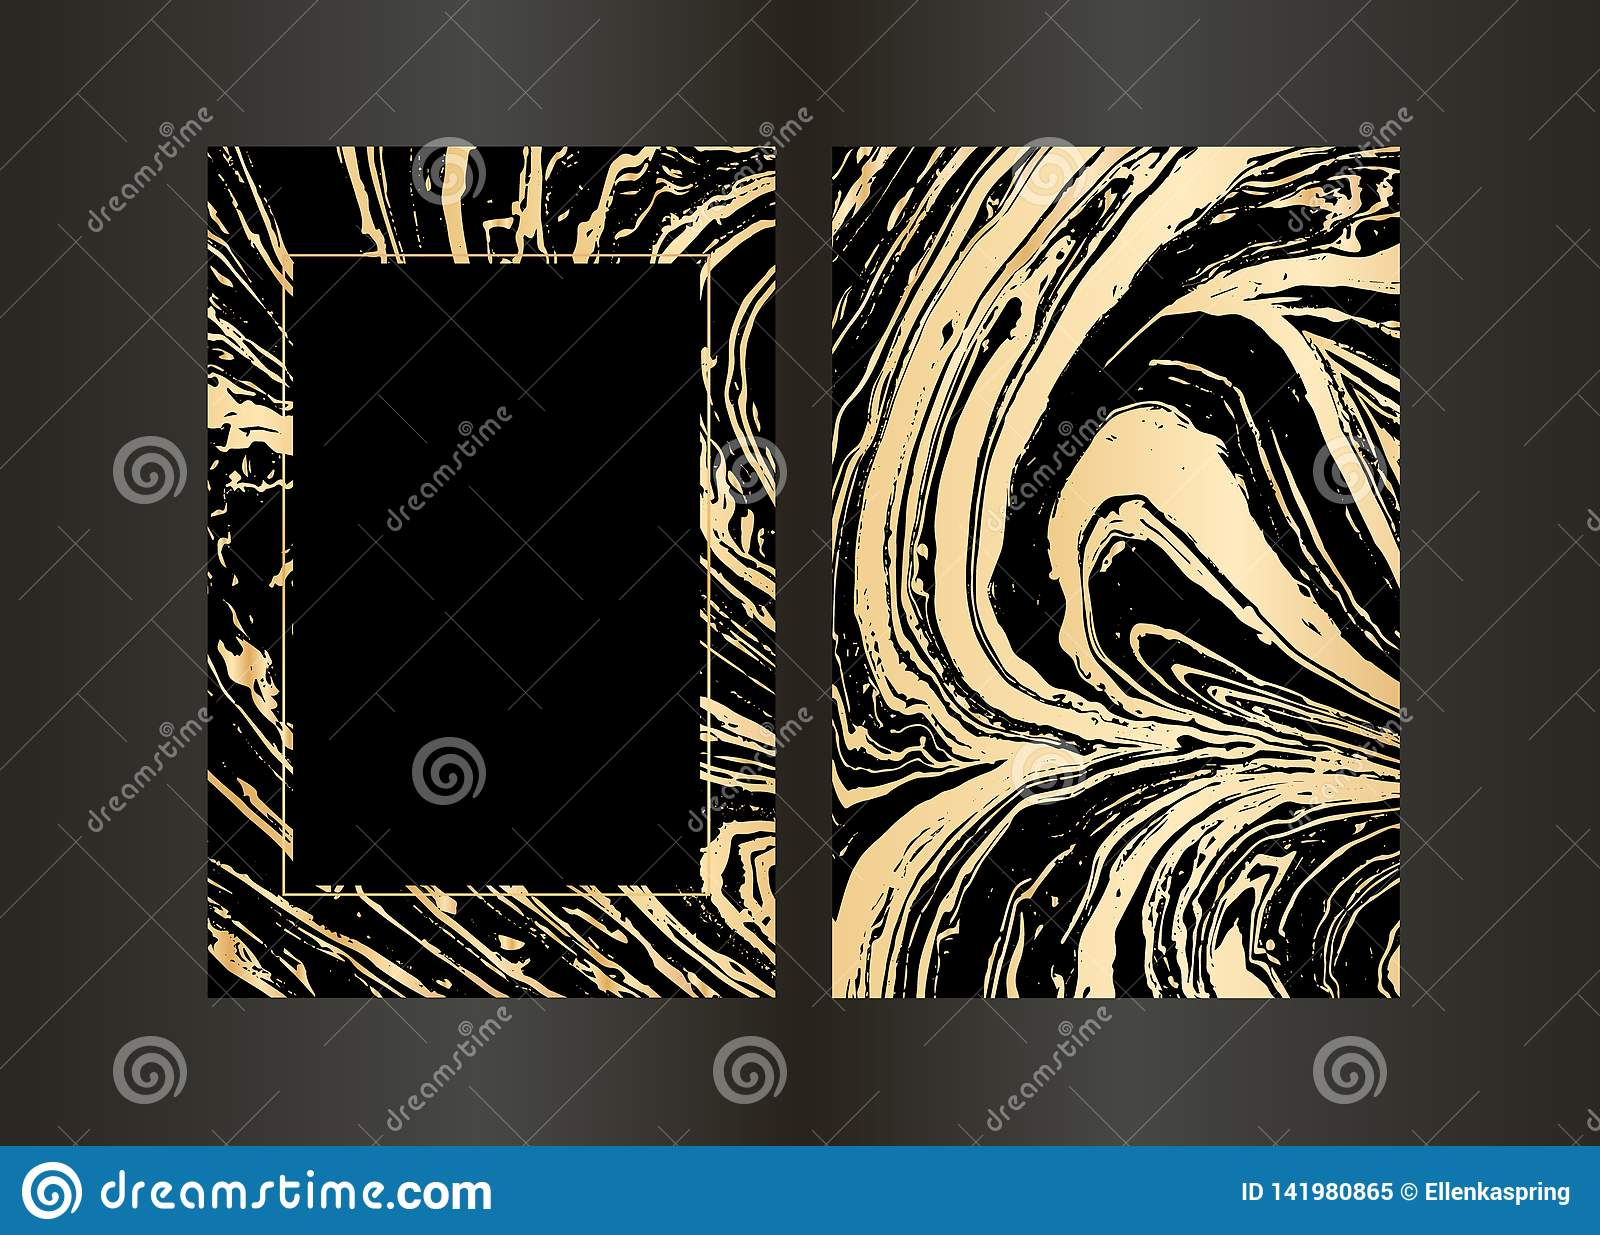 Set Of Vector Elegant Black And Gold Brochure, Wedding Invitation Card,  Background, Cover. Design Template With Marble Stock Vector - Illustration  of liquid, frame: 141980865